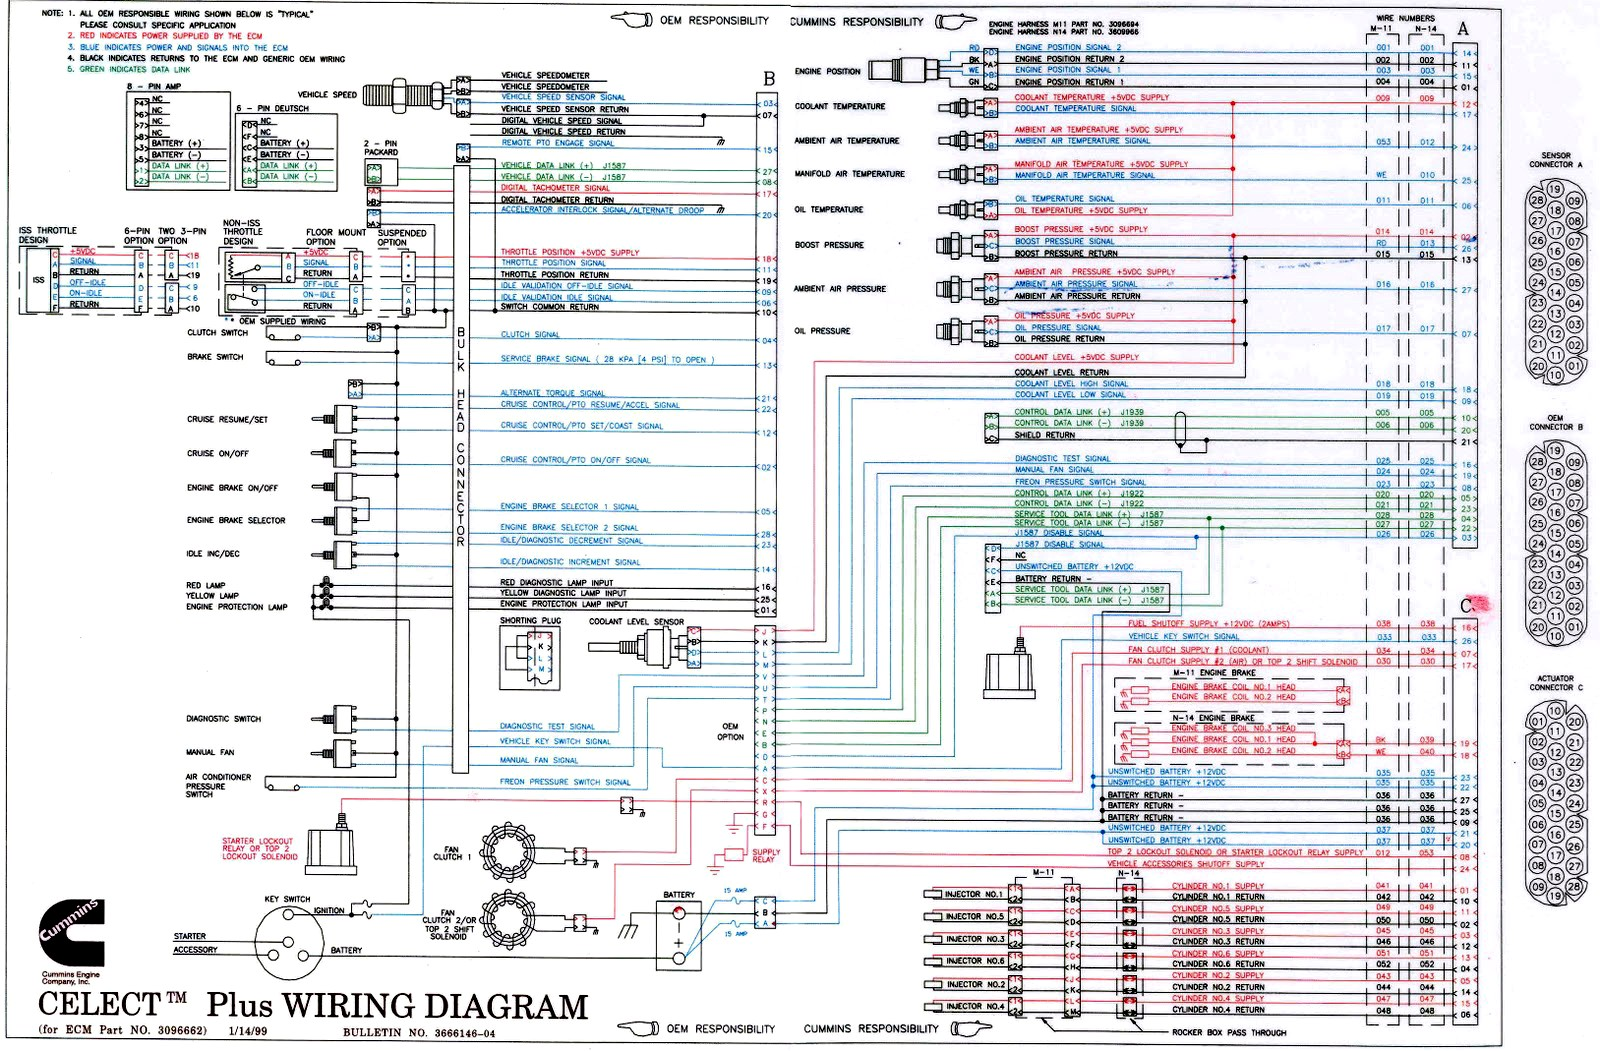 Celect+Plus+Wiring+Diagram+Cummins n14 celect wiring diagram n14 cummins engine wiring diagram  at crackthecode.co